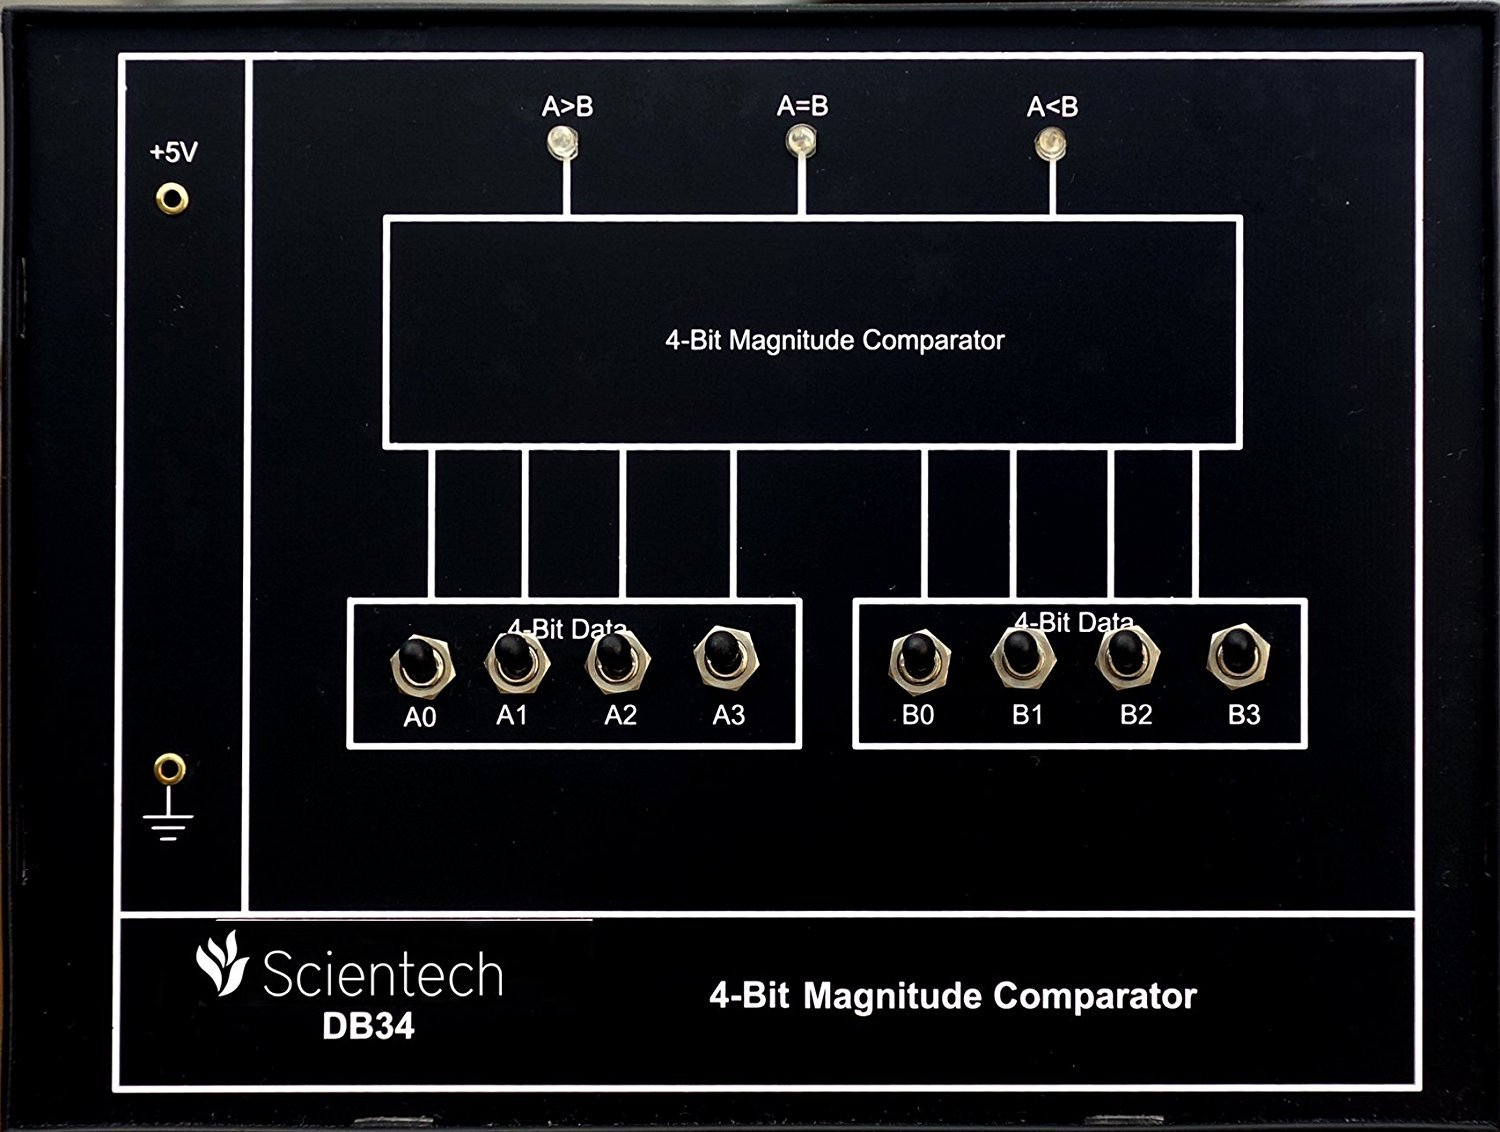 Db34 4 Bit Magnitude Comparator Experiment Board And Trainer Kit Circuit Diagram Of With 1 Year Warranty